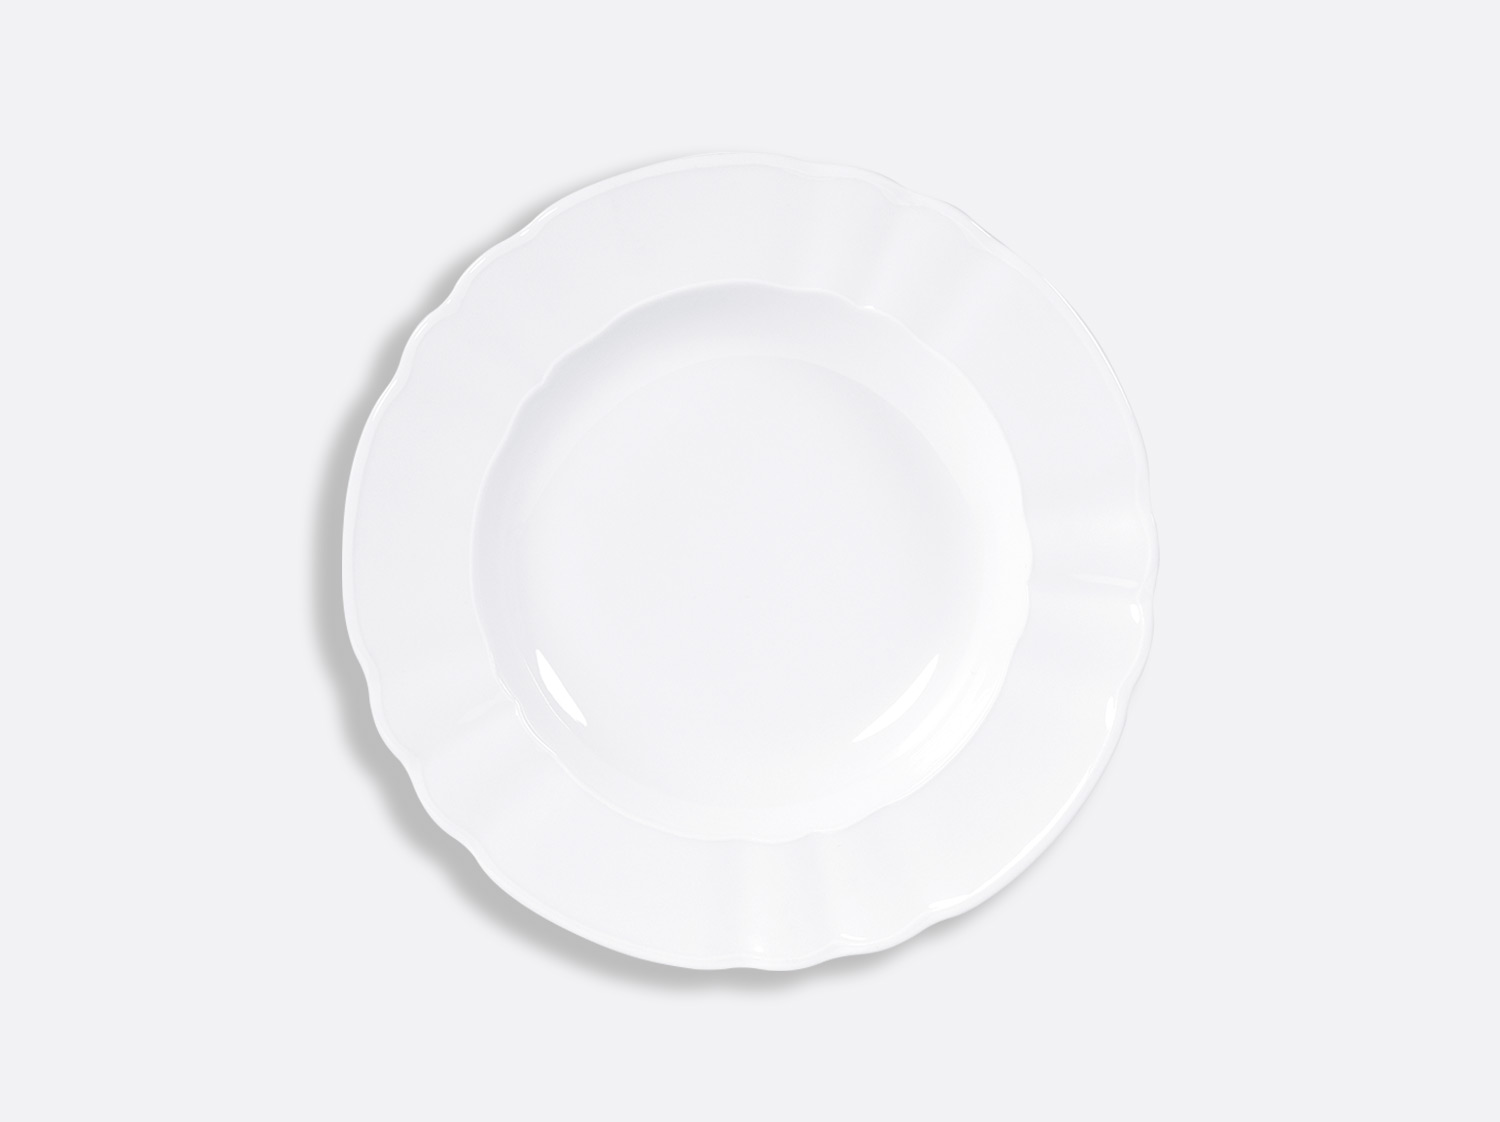 Assiette creuse à aile 22,5 cm en porcelaine de la collection L.15 BLANC Bernardaud